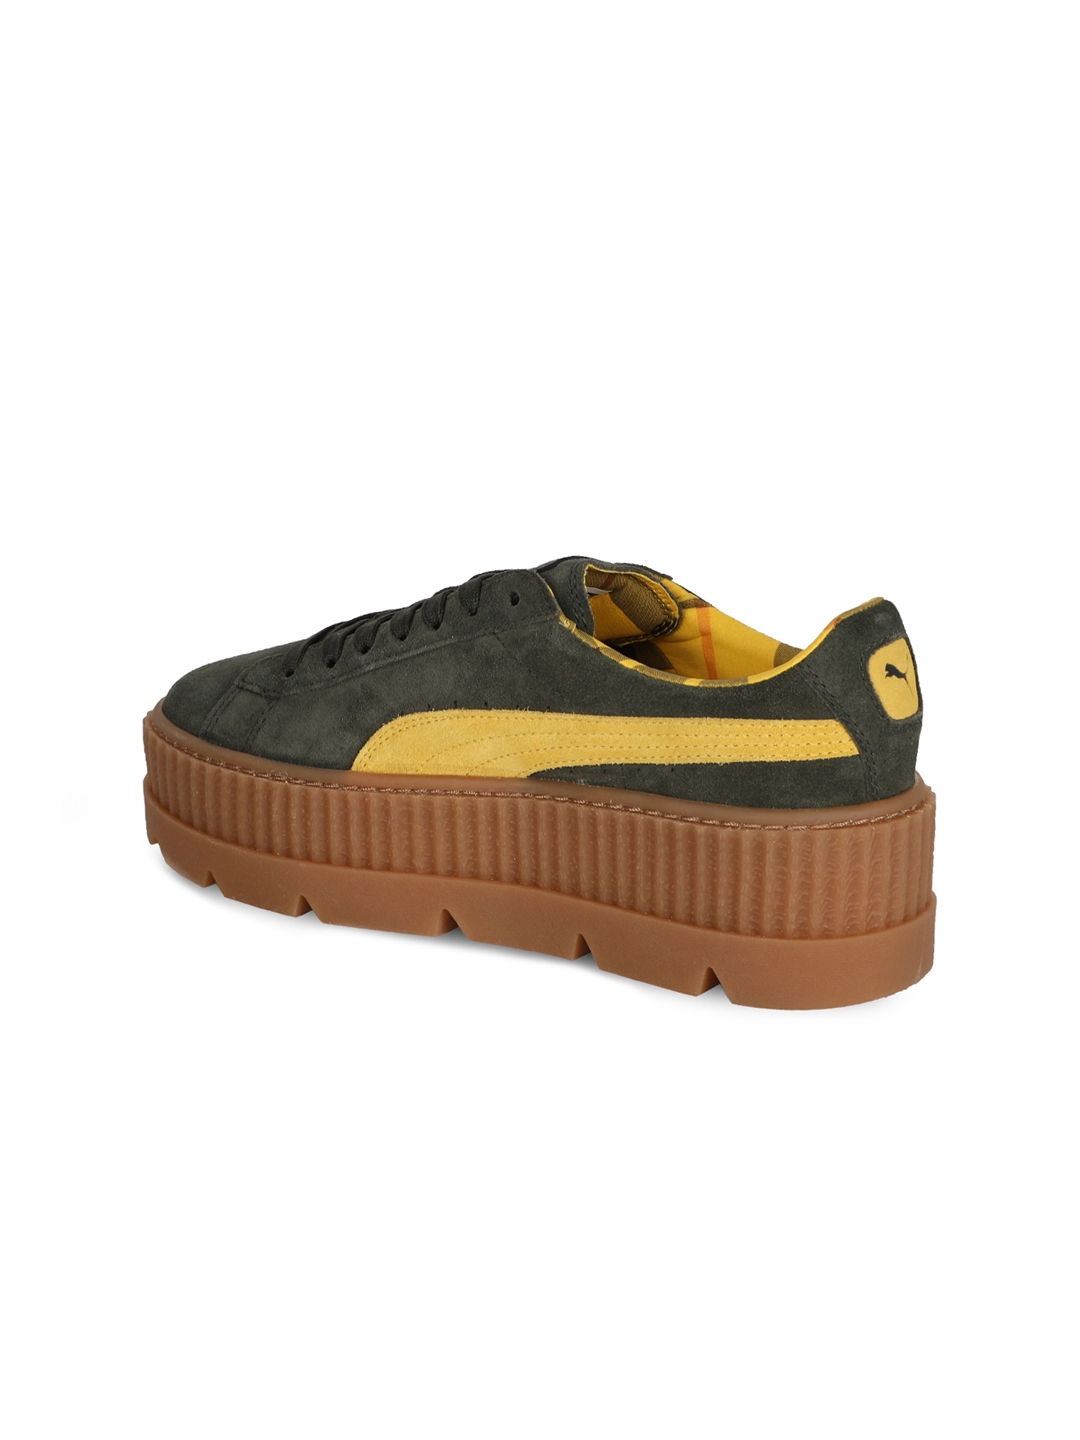 3a58f68c175 Buy Puma Women Olive Green Cleated Creeper Suede Wn S Sneakers ...